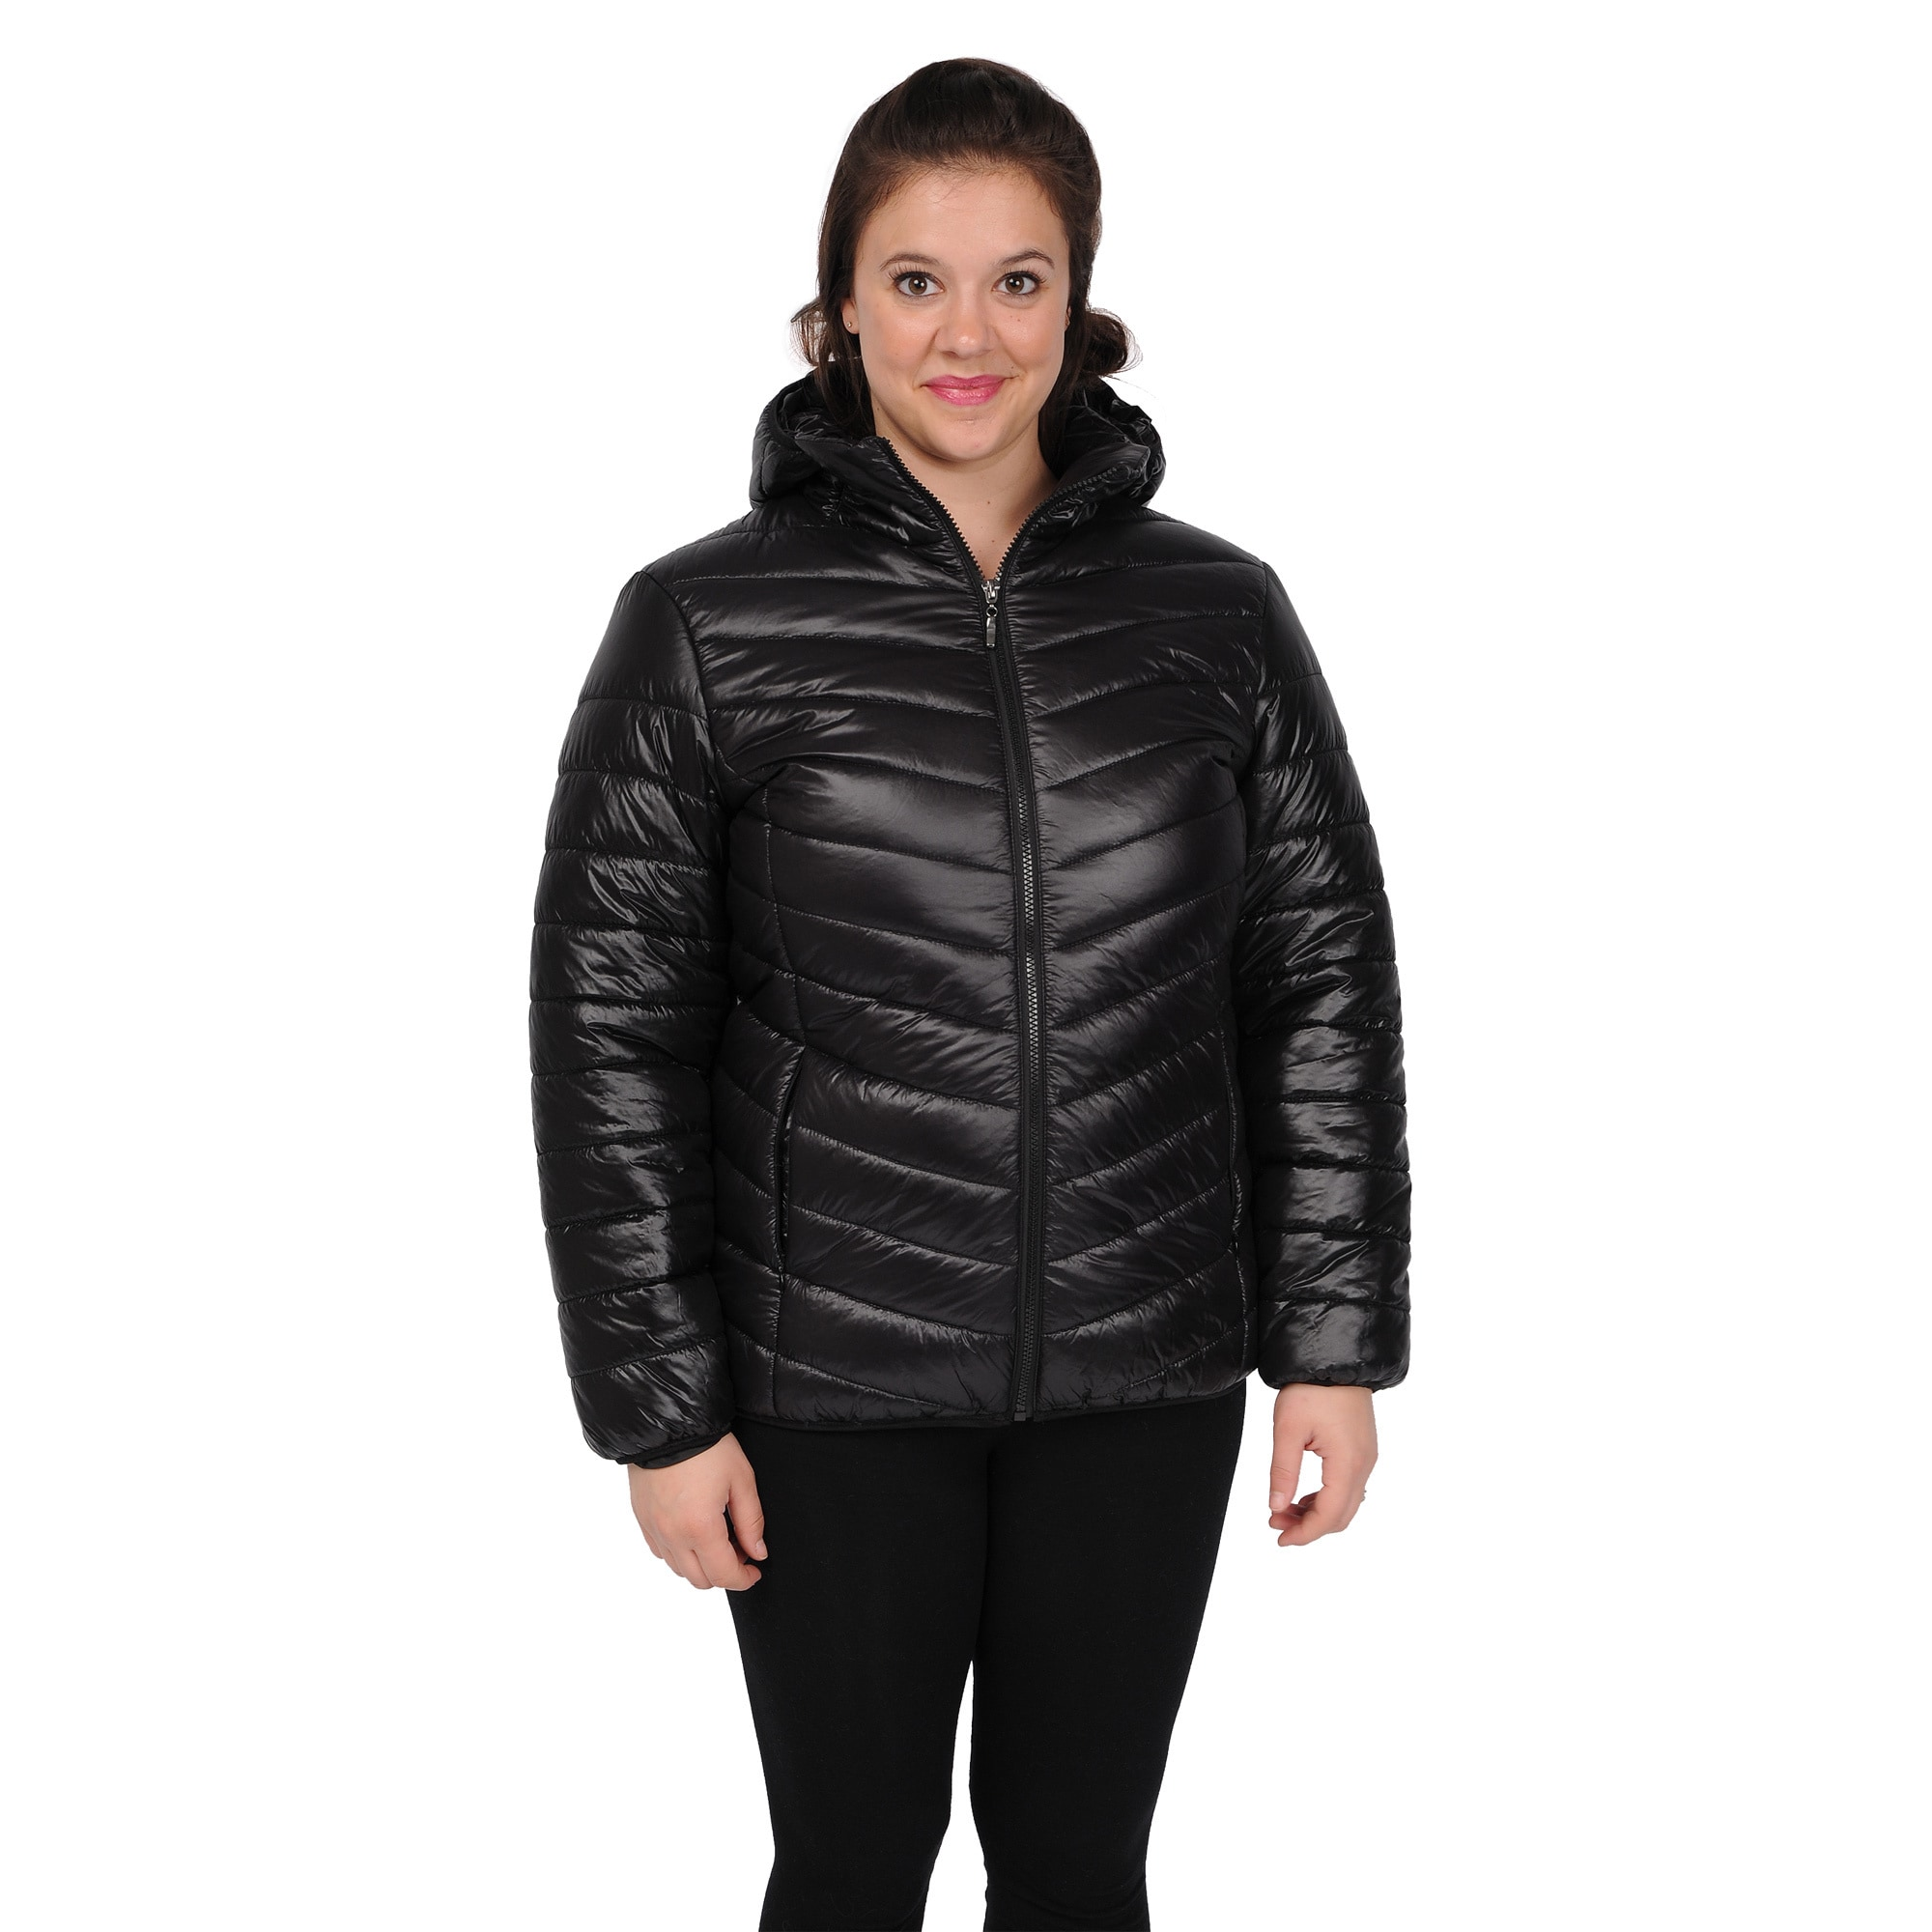 9c1a47ccd53fe Shop EXcelled Women s Plus Size Packable Puffer Jacket with Attached Hood -  Free Shipping Today - Overstock - 9441766